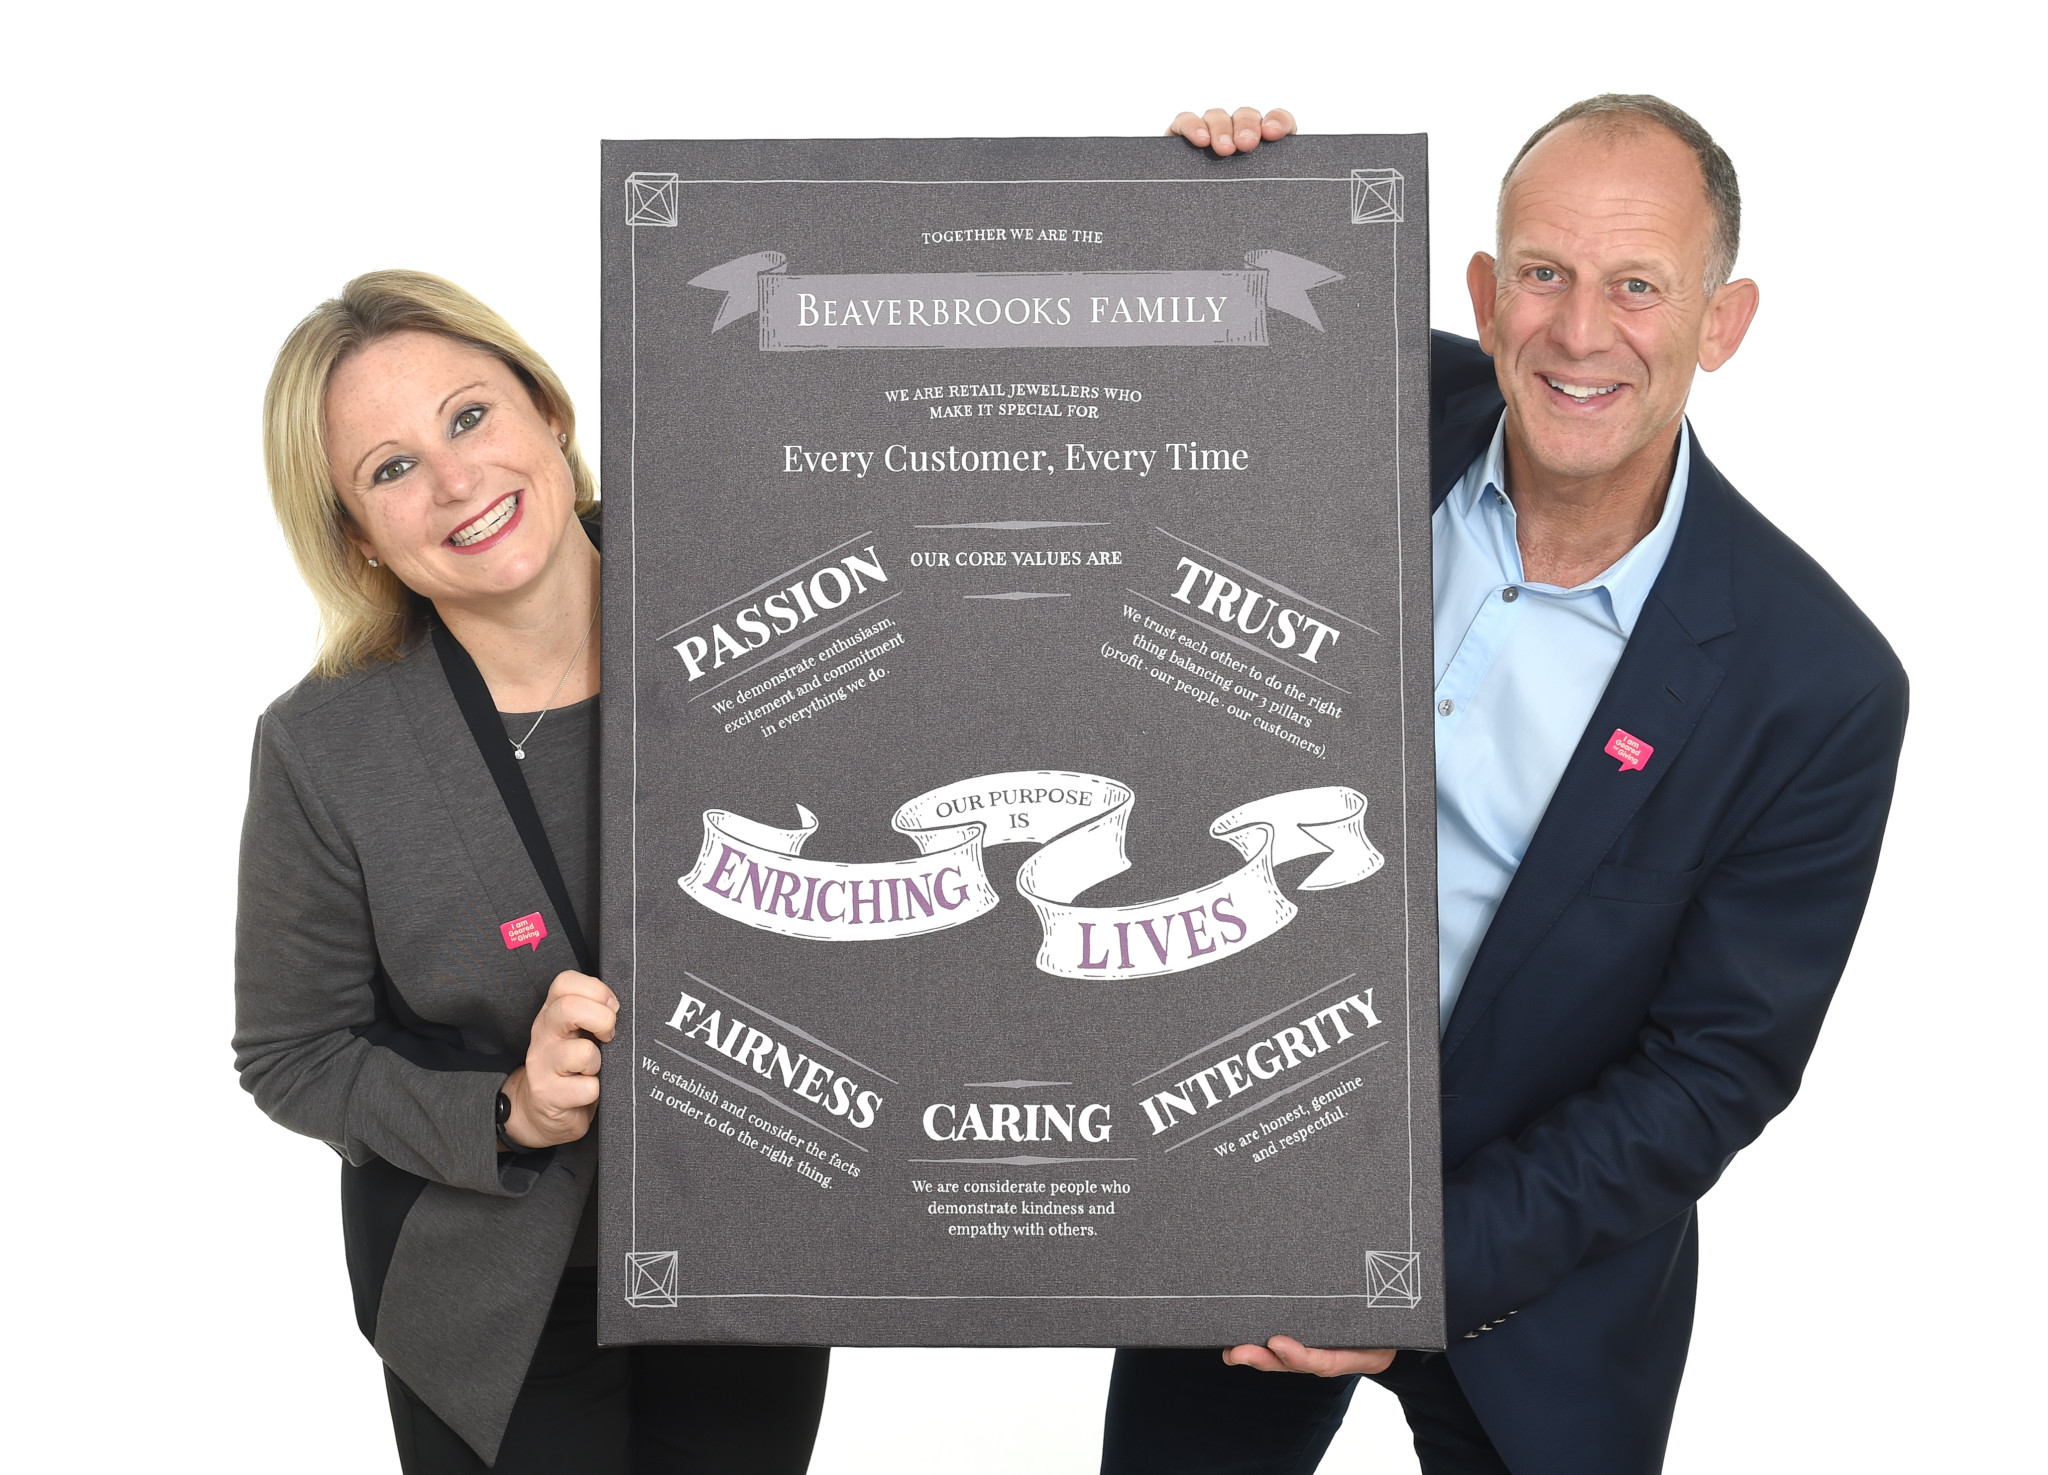 Anna Blackburn and Mark Adlestone stand behind the companys core values of passion, trust, fairness and integrity.